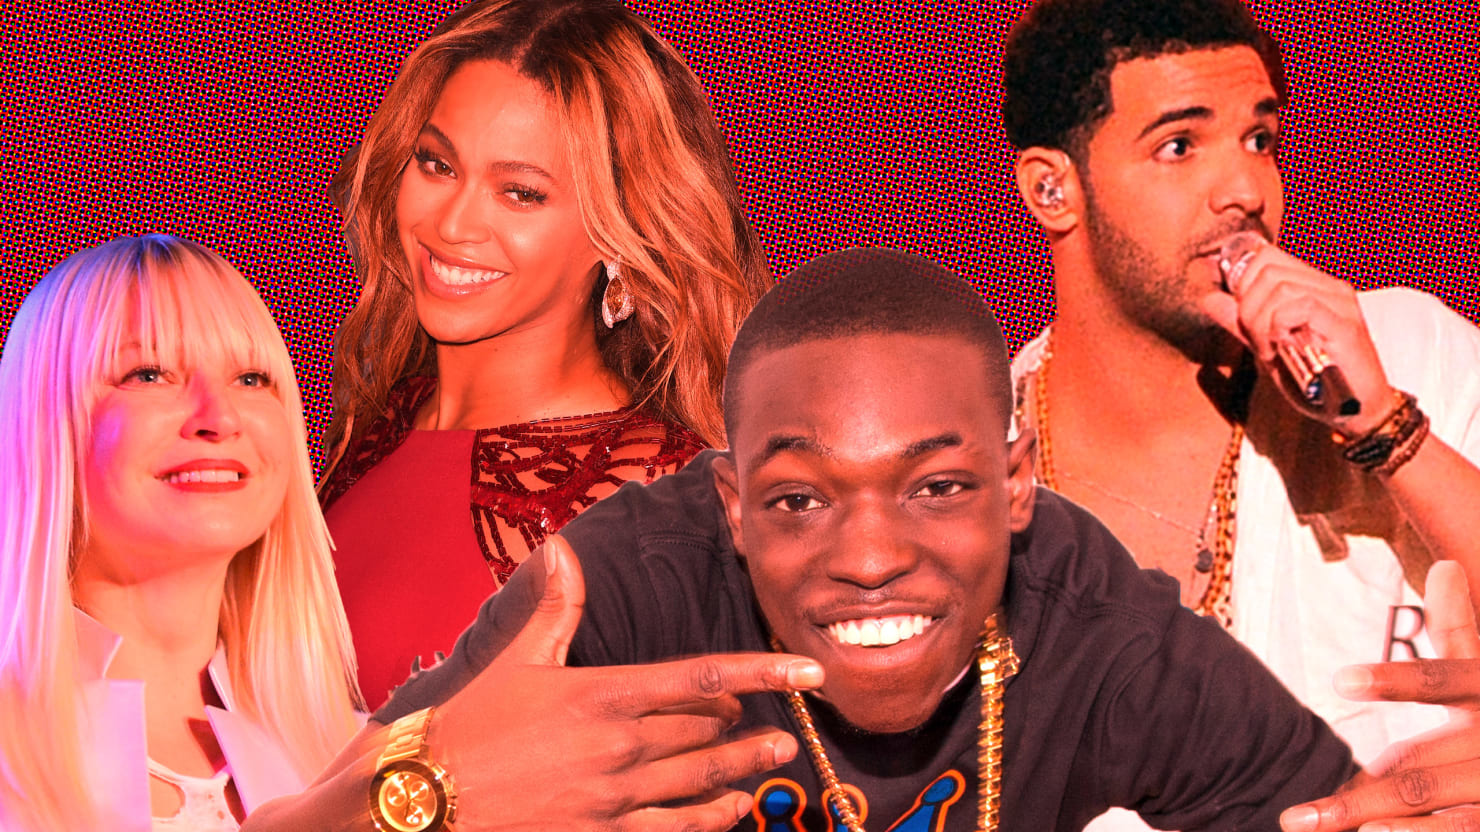 The 14 Best Songs of 2014: Bobby Shmurda, Future Islands, Drake, and More